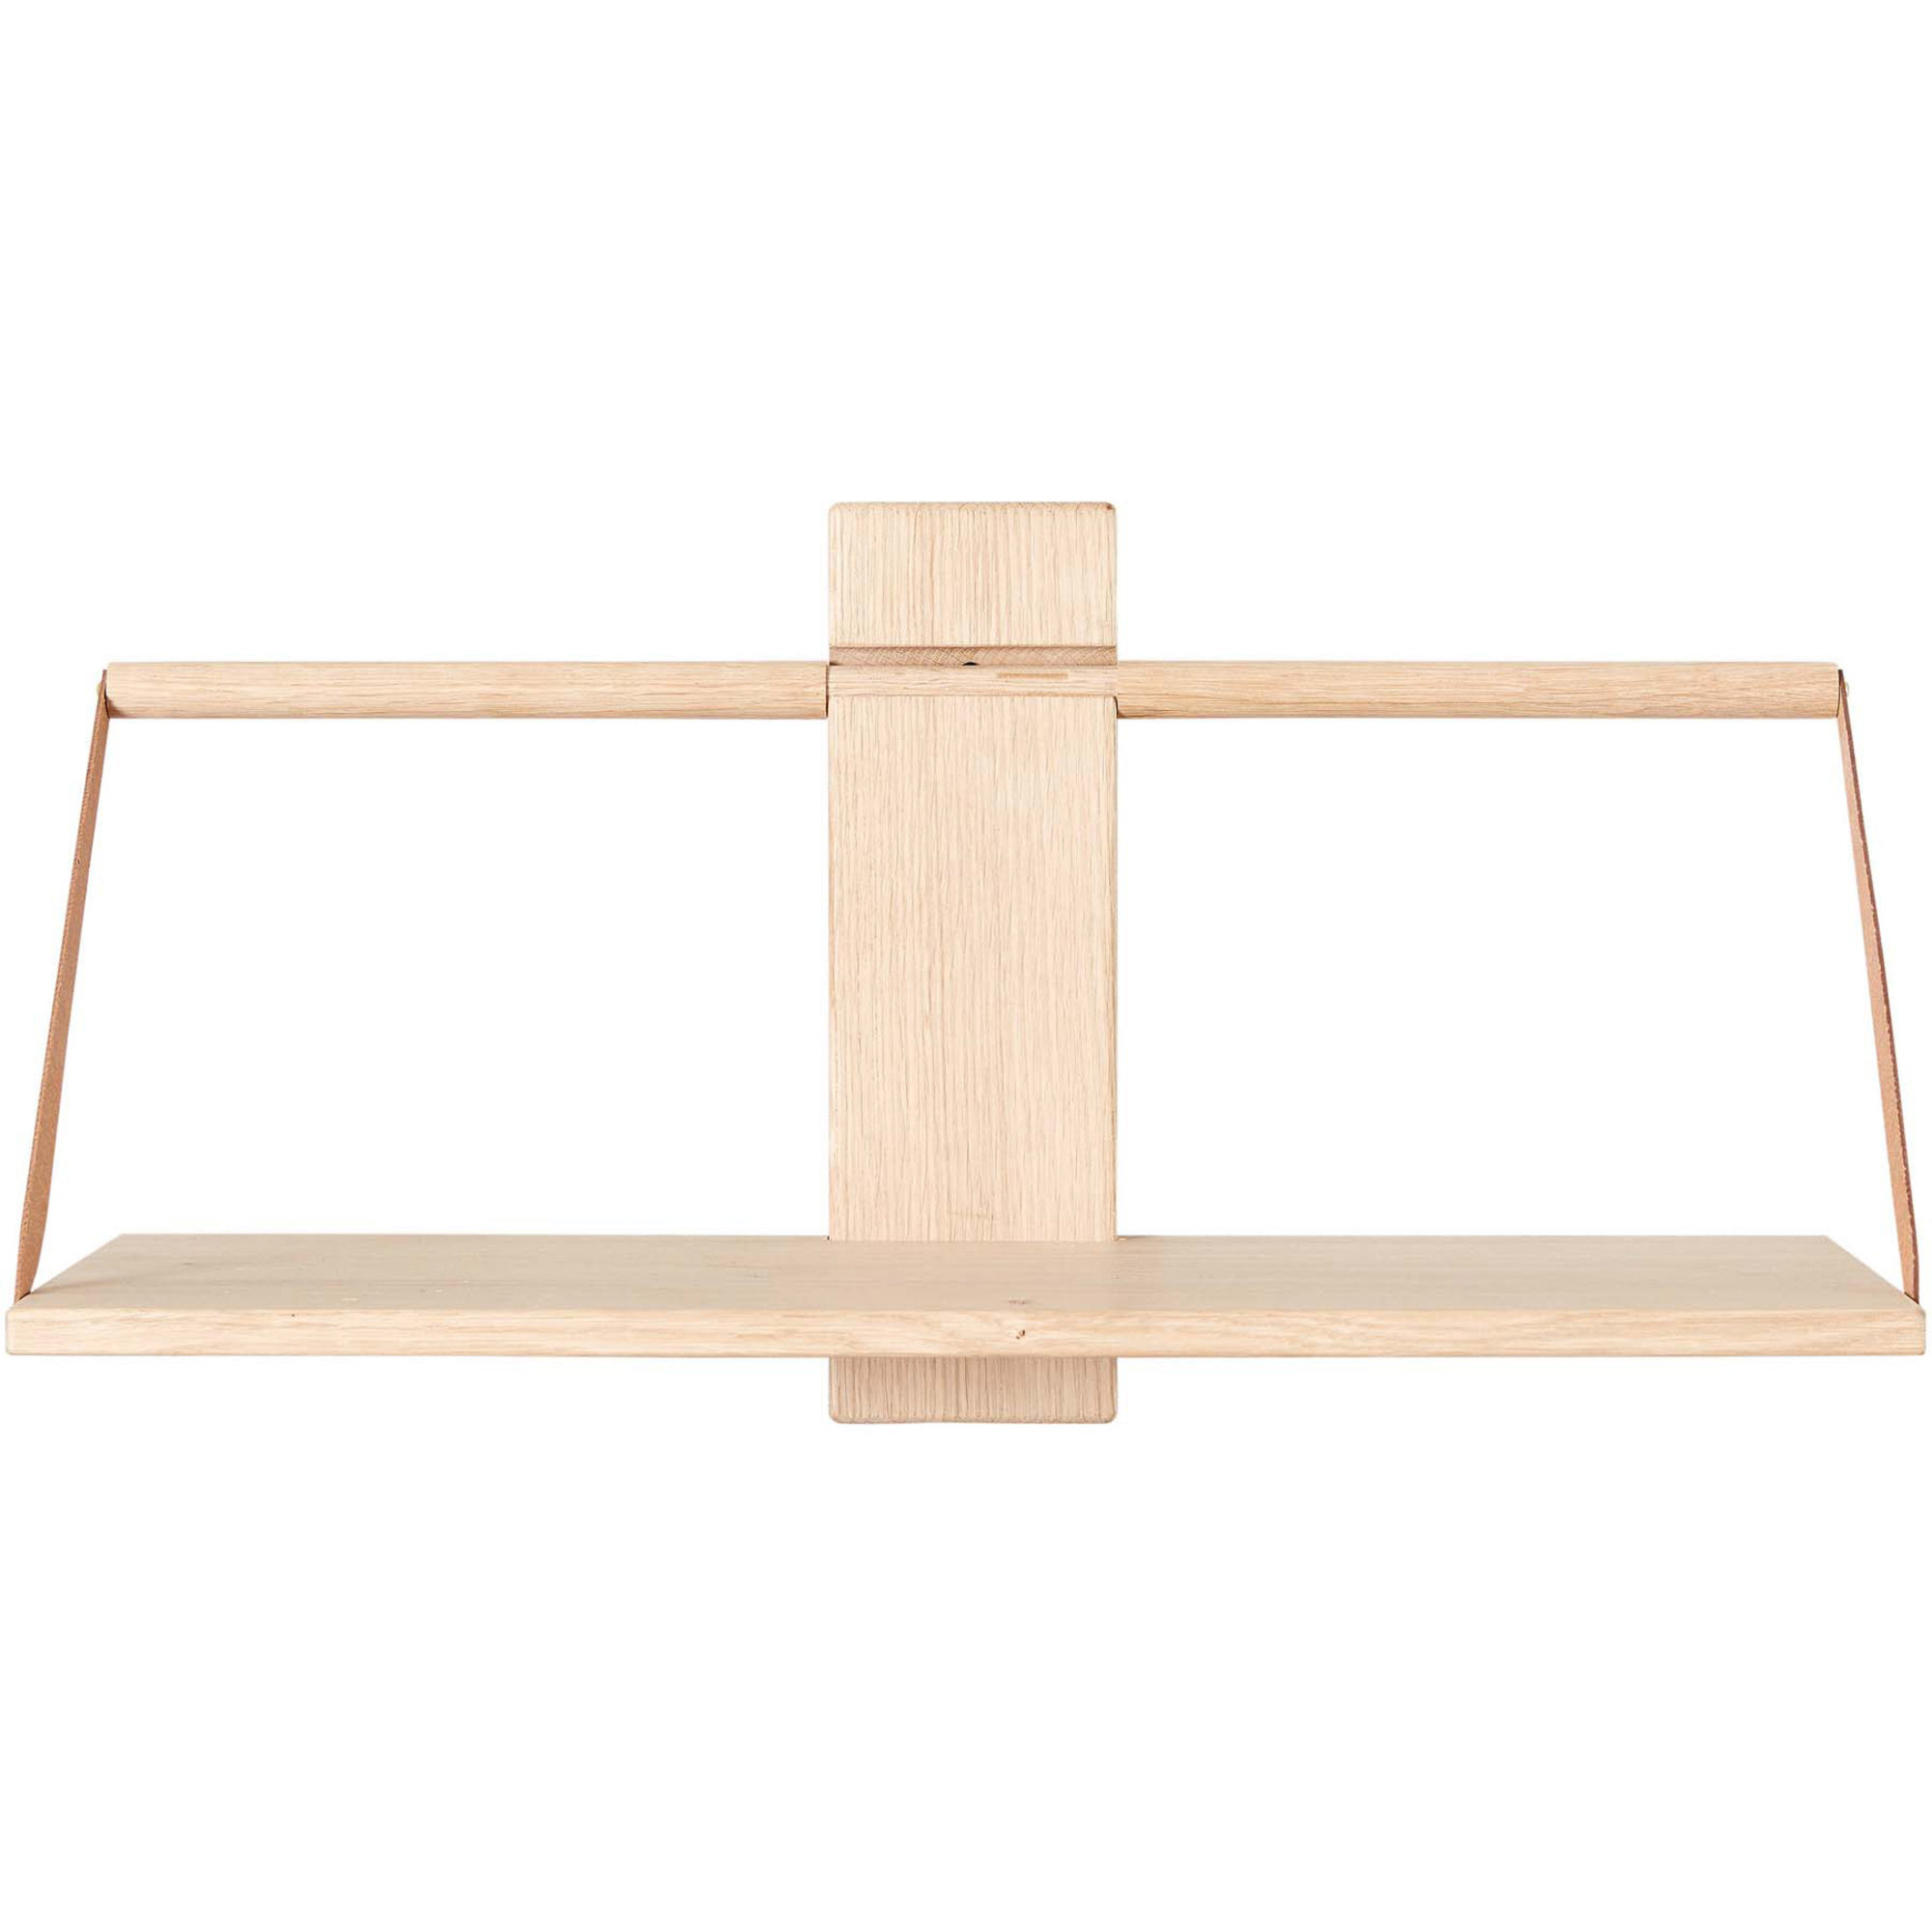 Andersen Furniture Wood wall Shelf 60 x 25 x 32 cm Large Oak